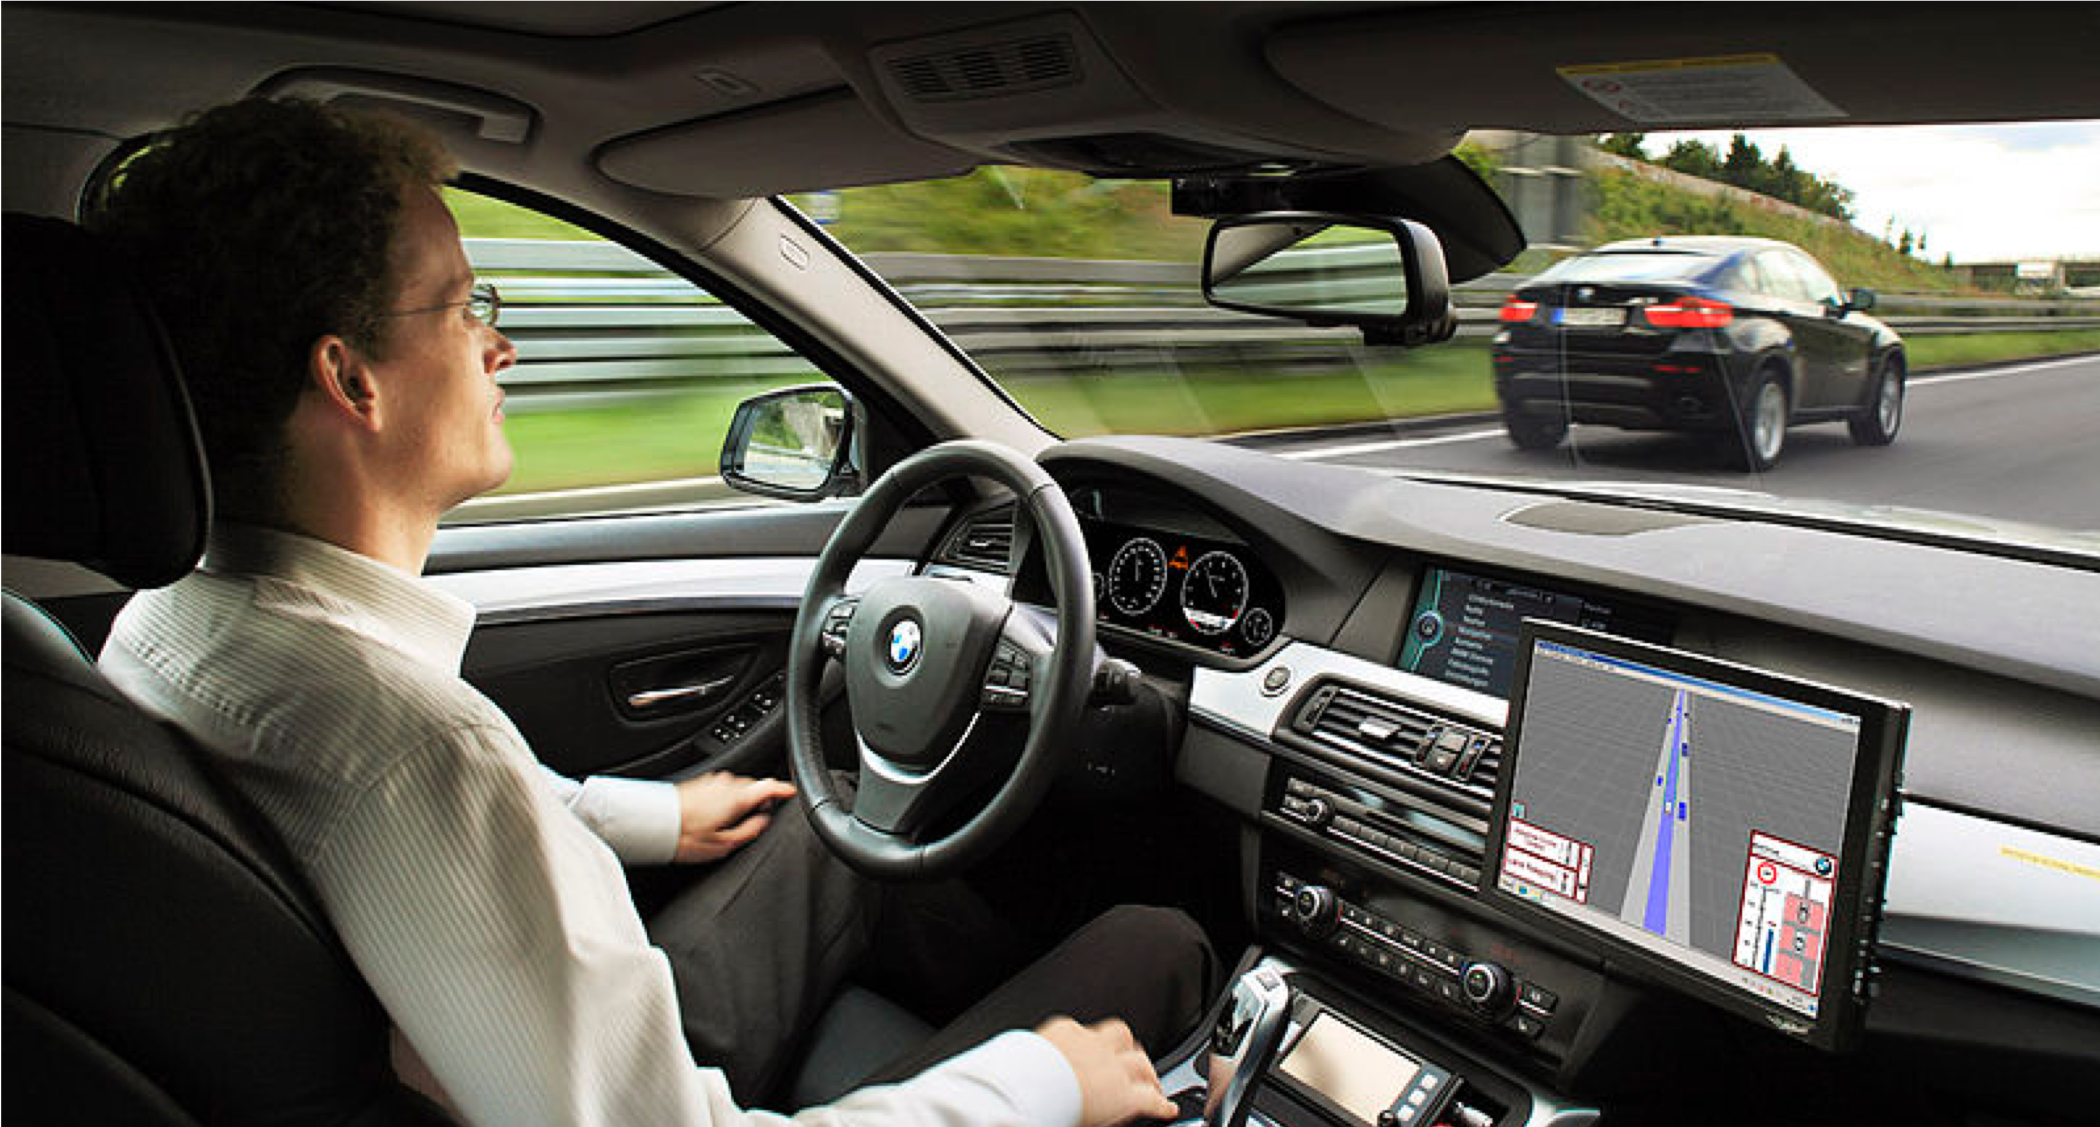 Should Humans be Allowed to Drive: The Risks and Rewards of Self-Driving Cars